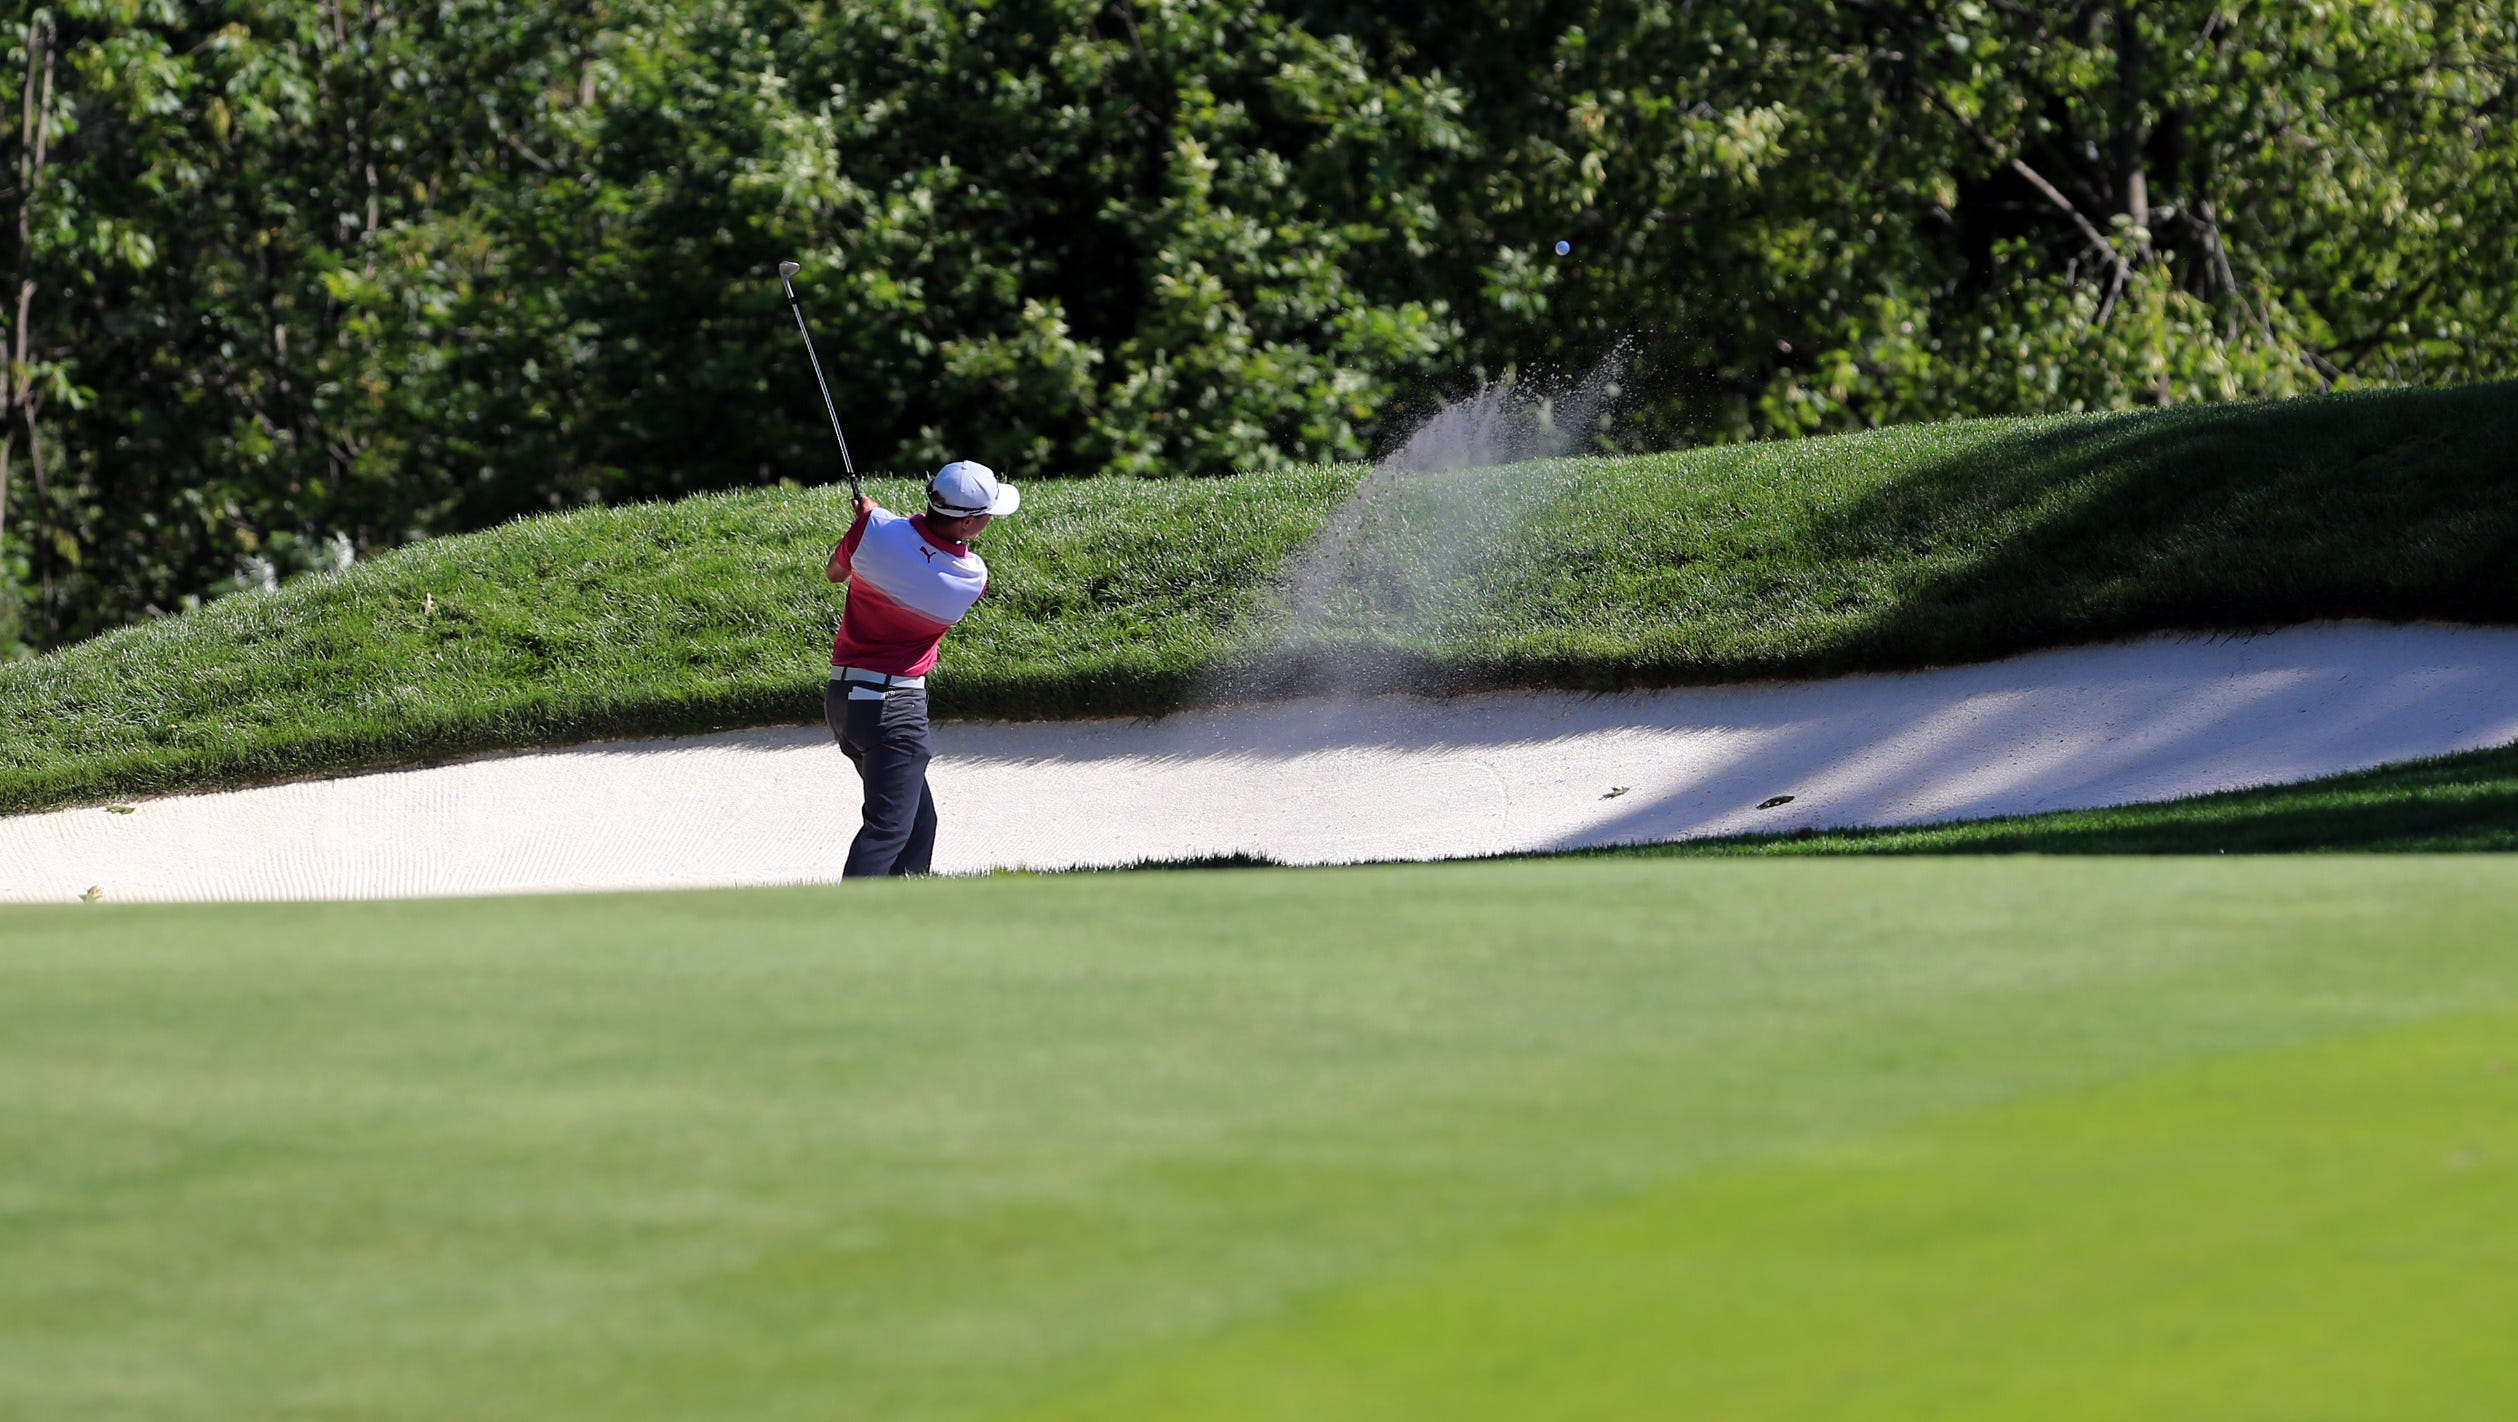 Jonas Blixt plays out of a bunker on the 14th hole.